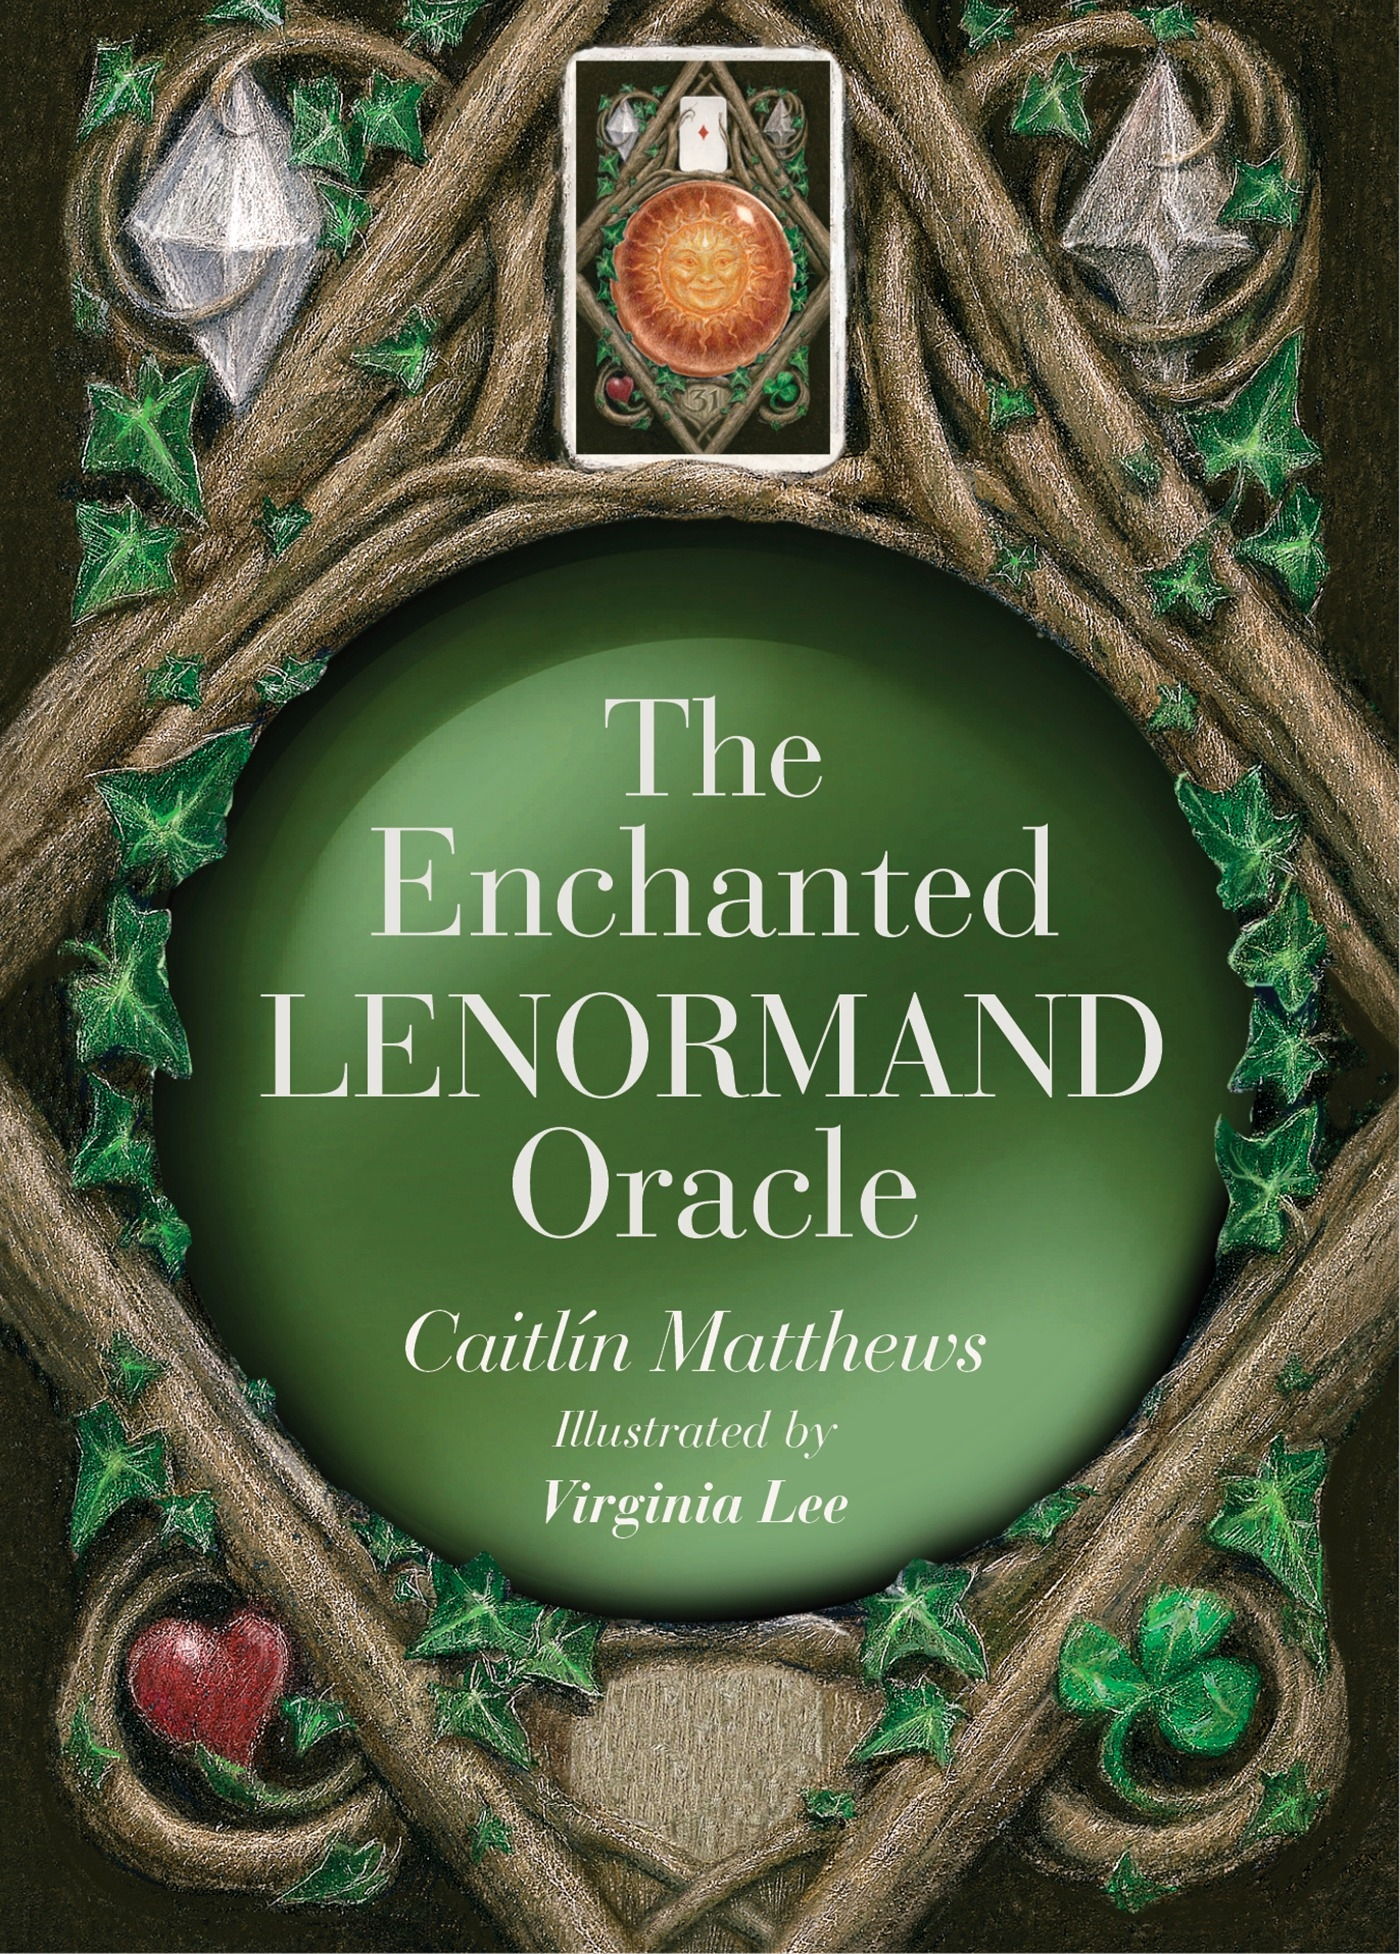 The Enchanted Lenormand Oracle39 Magical Cards to Reveal Your True Self and Y...